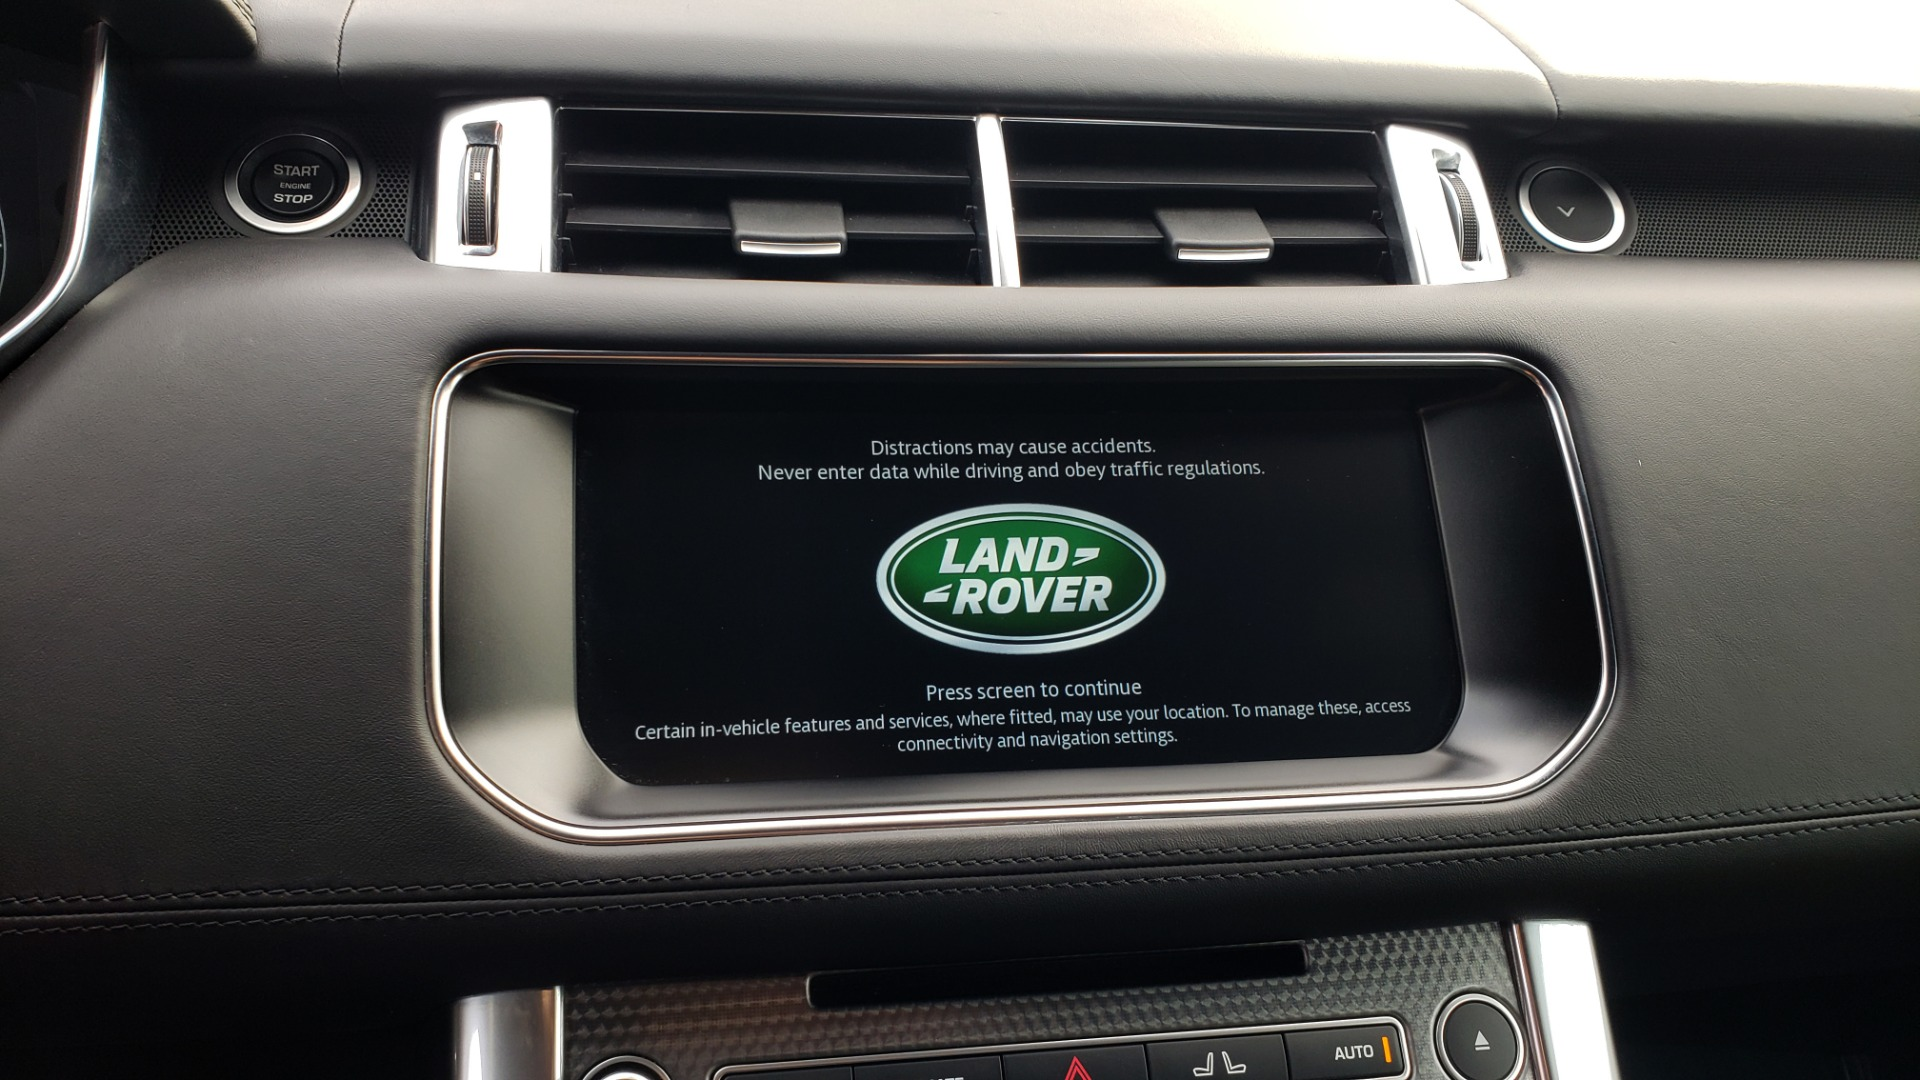 Used 2017 Land Rover RANGE ROVER SPORT HSE DYNAMIC / SC V6 / NAV / MERIDIAN / PANO-ROOF / REARVIEW for sale Sold at Formula Imports in Charlotte NC 28227 184